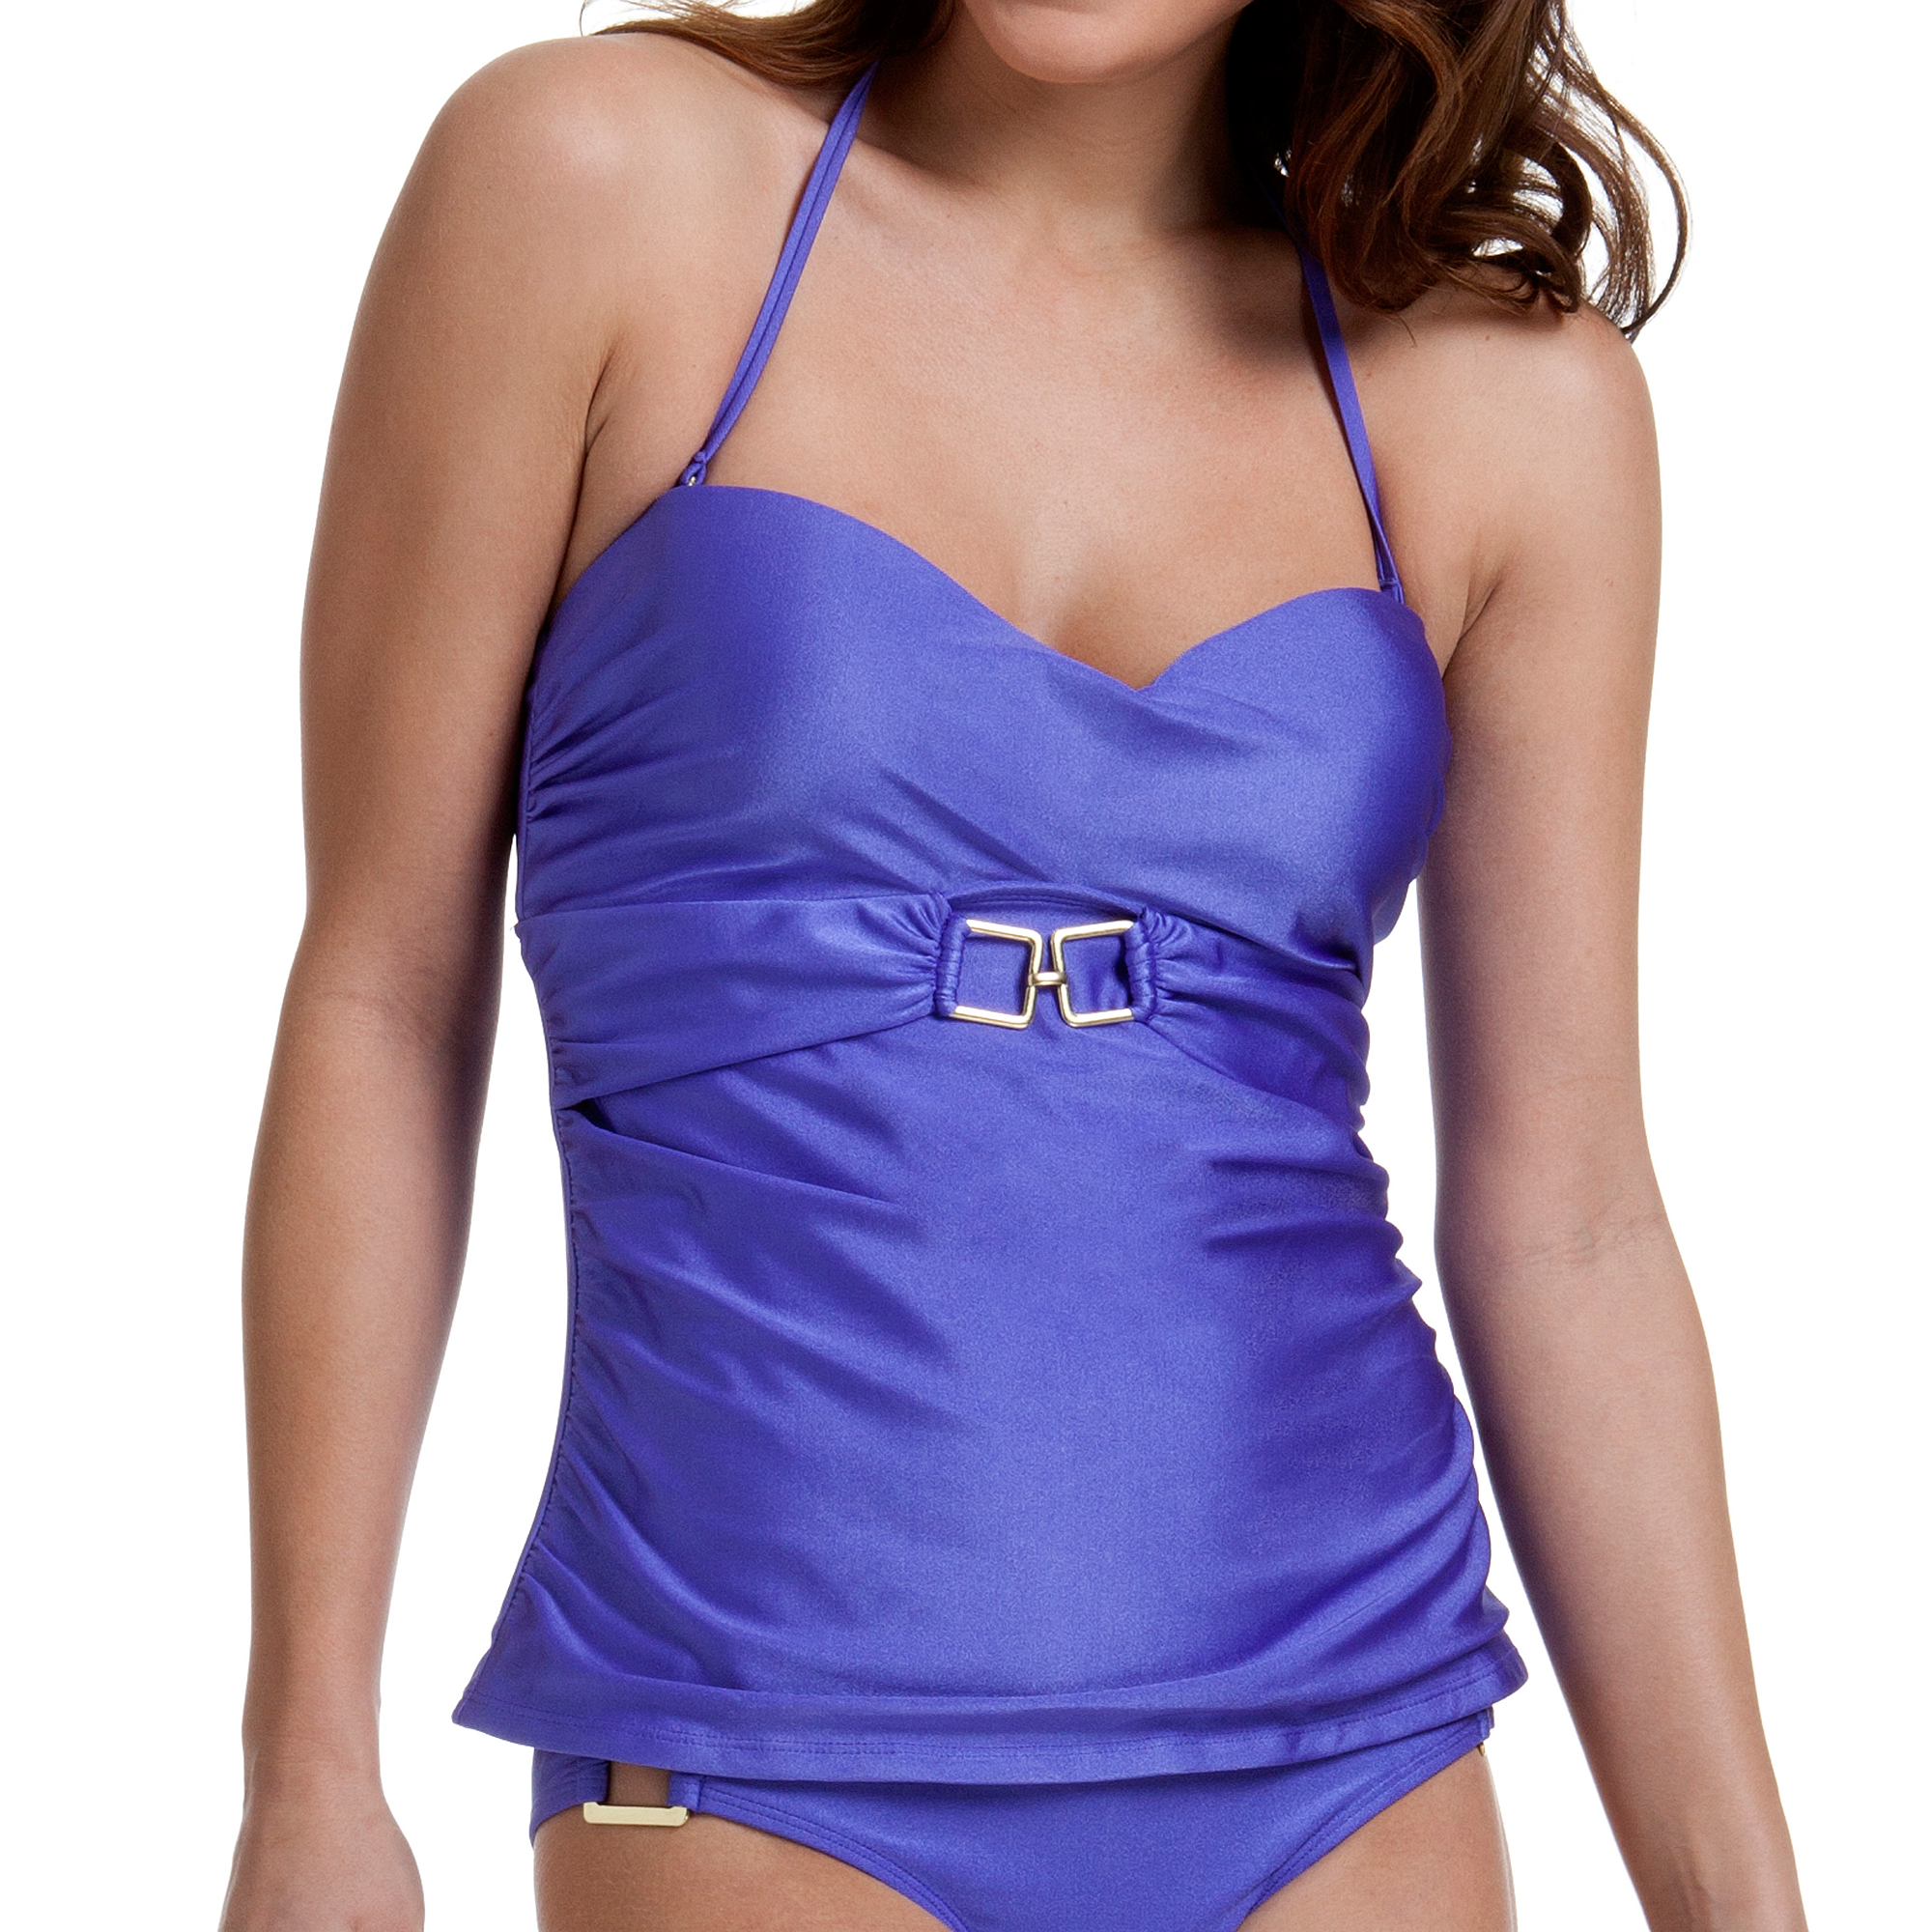 Miss America by Catalina Women's Belted Tankini Top With Metal Accents